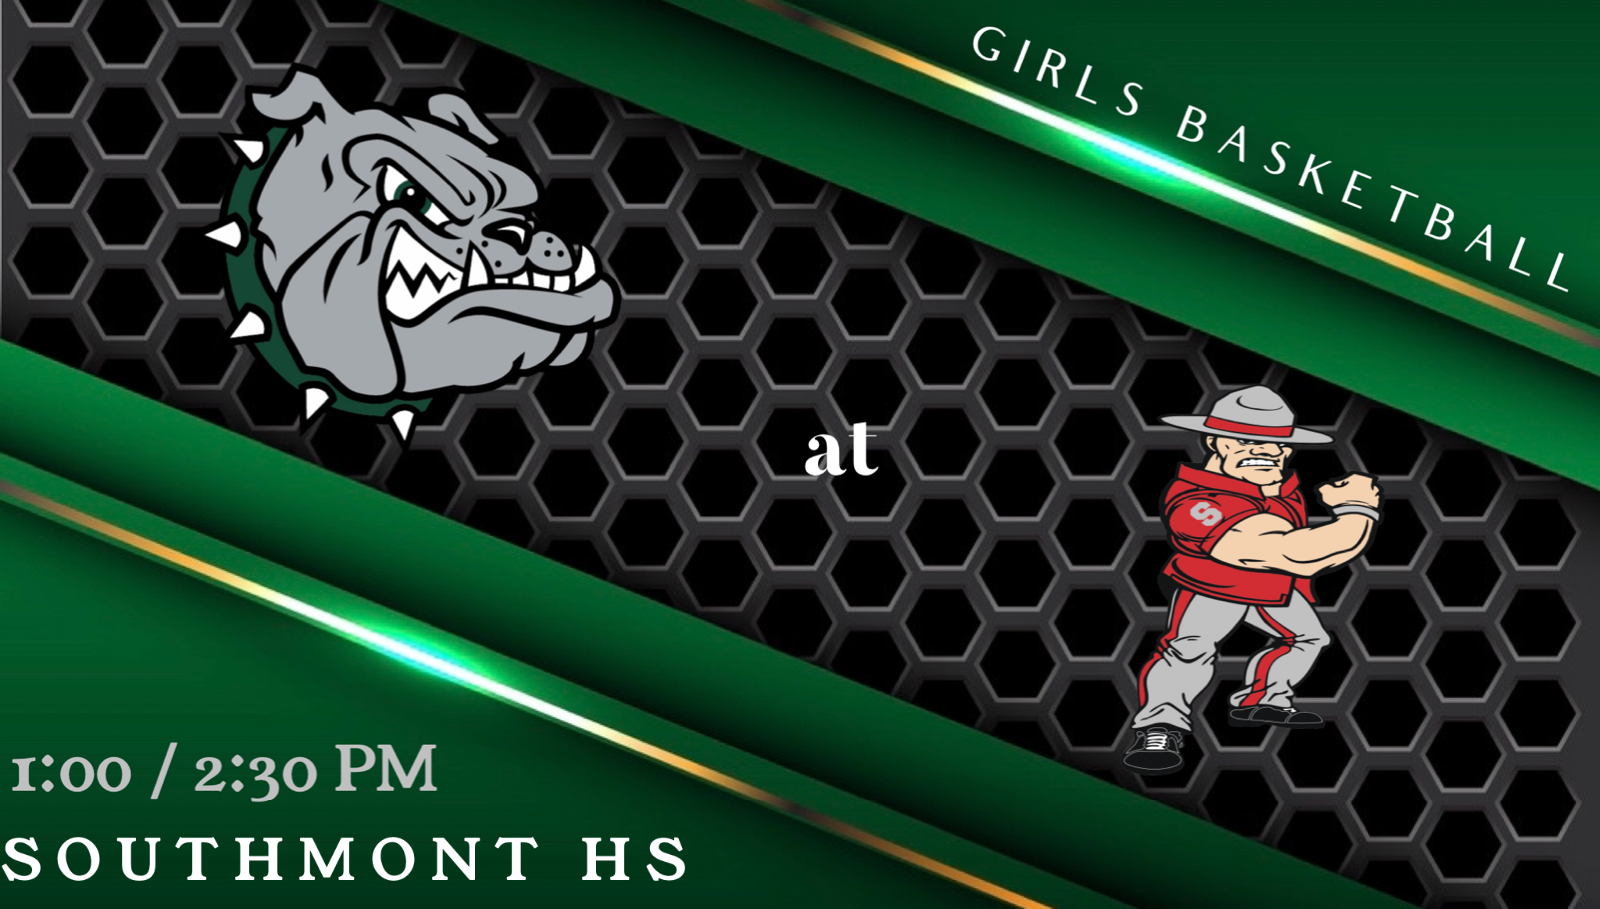 Game Day – Girls Basketball Travels to Southmont (1:00/2:30pm)